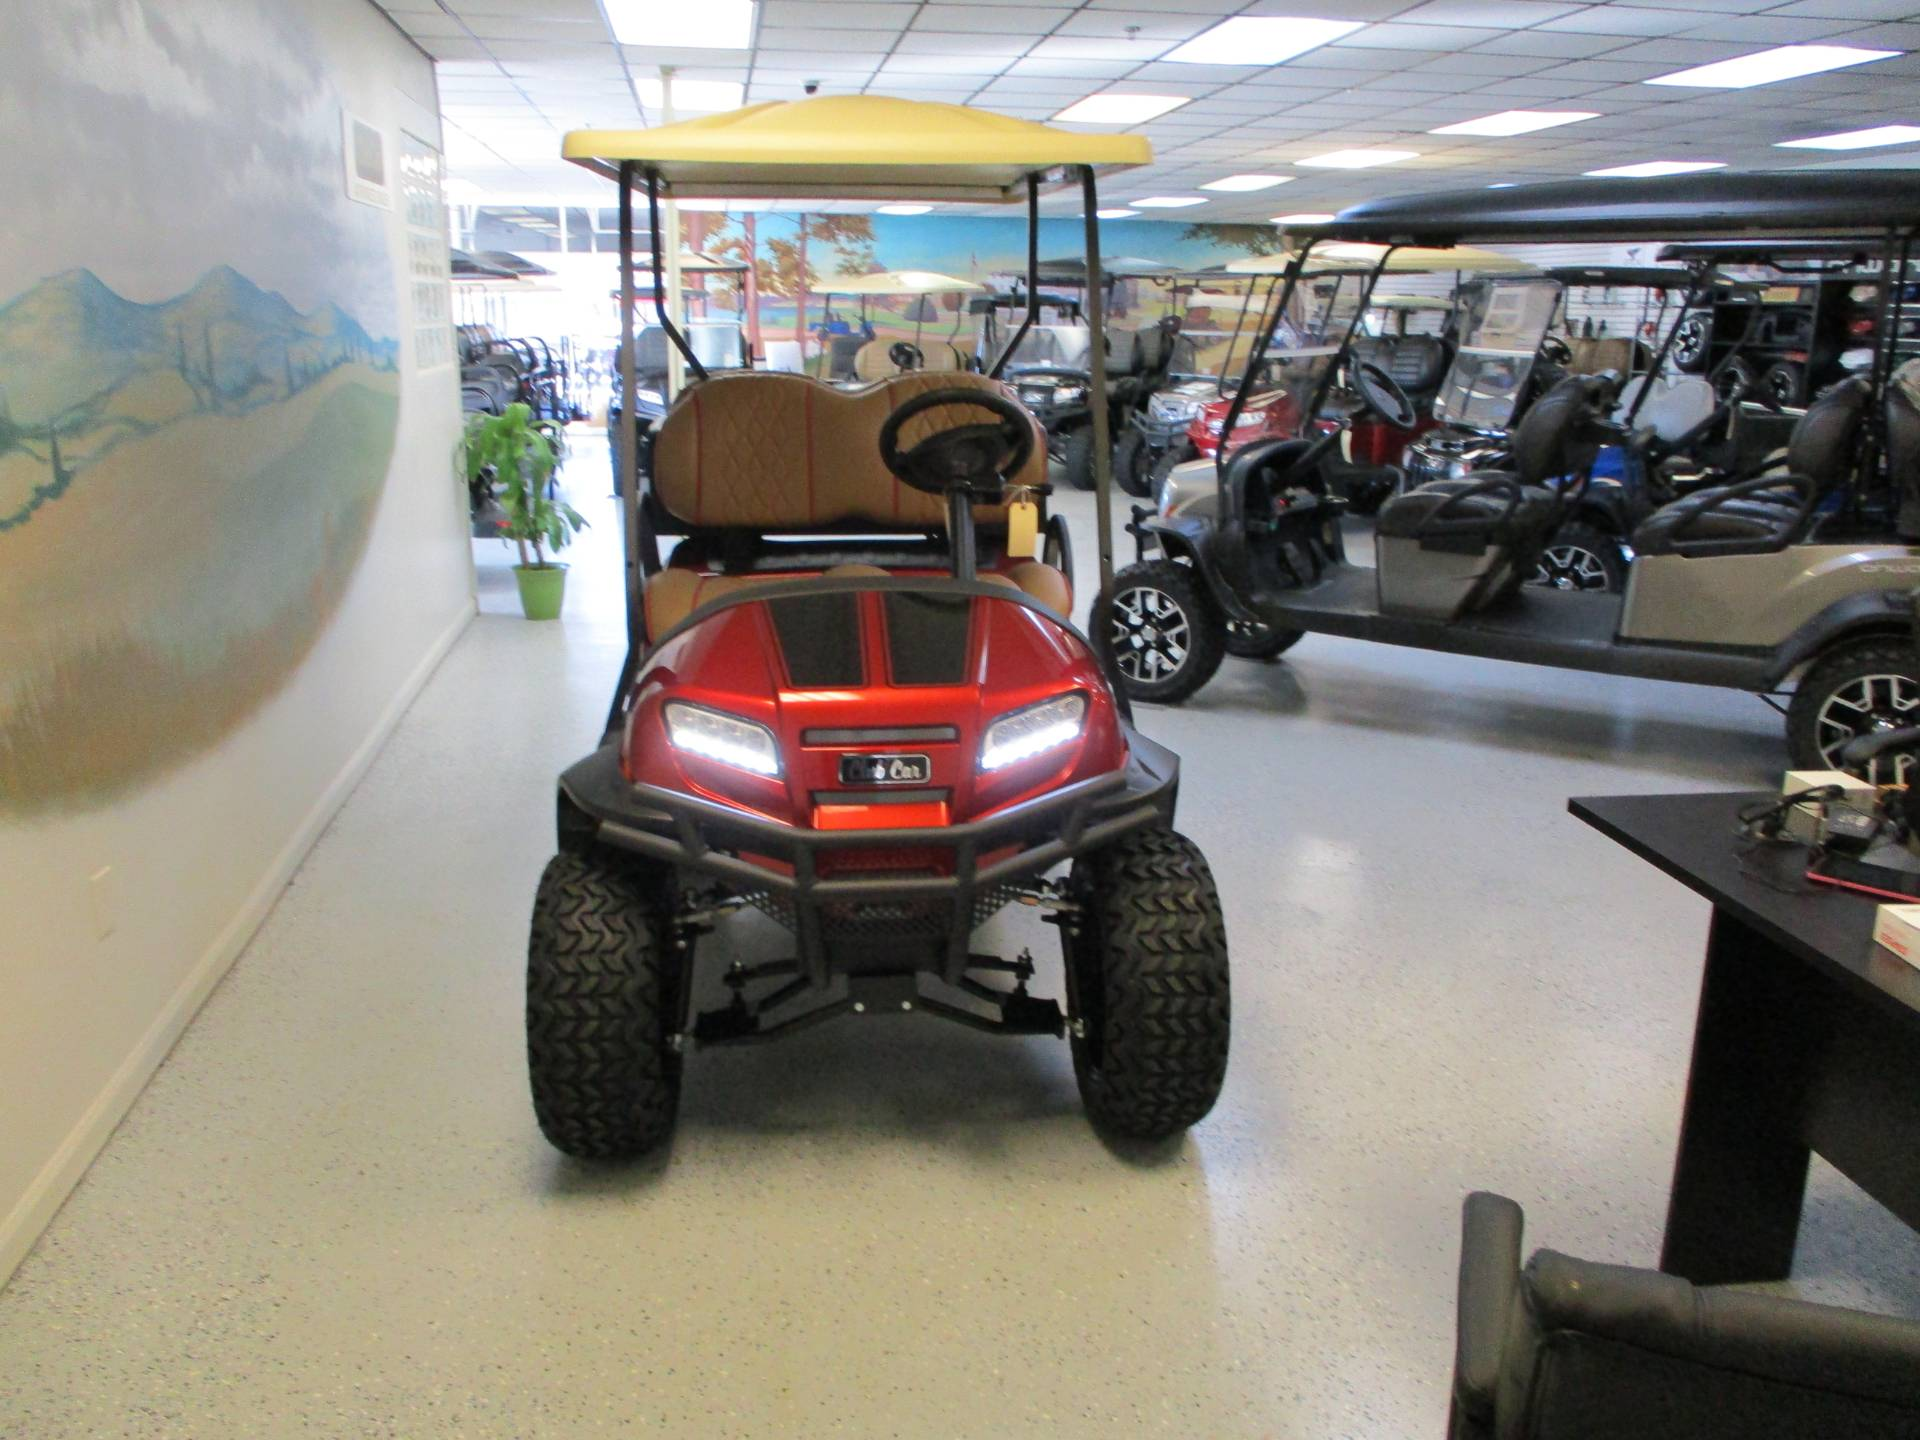 2020 Club Car Onward 4 Passenger Lifted Lithium Ion Sandstone Edition in Canton, Georgia - Photo 2